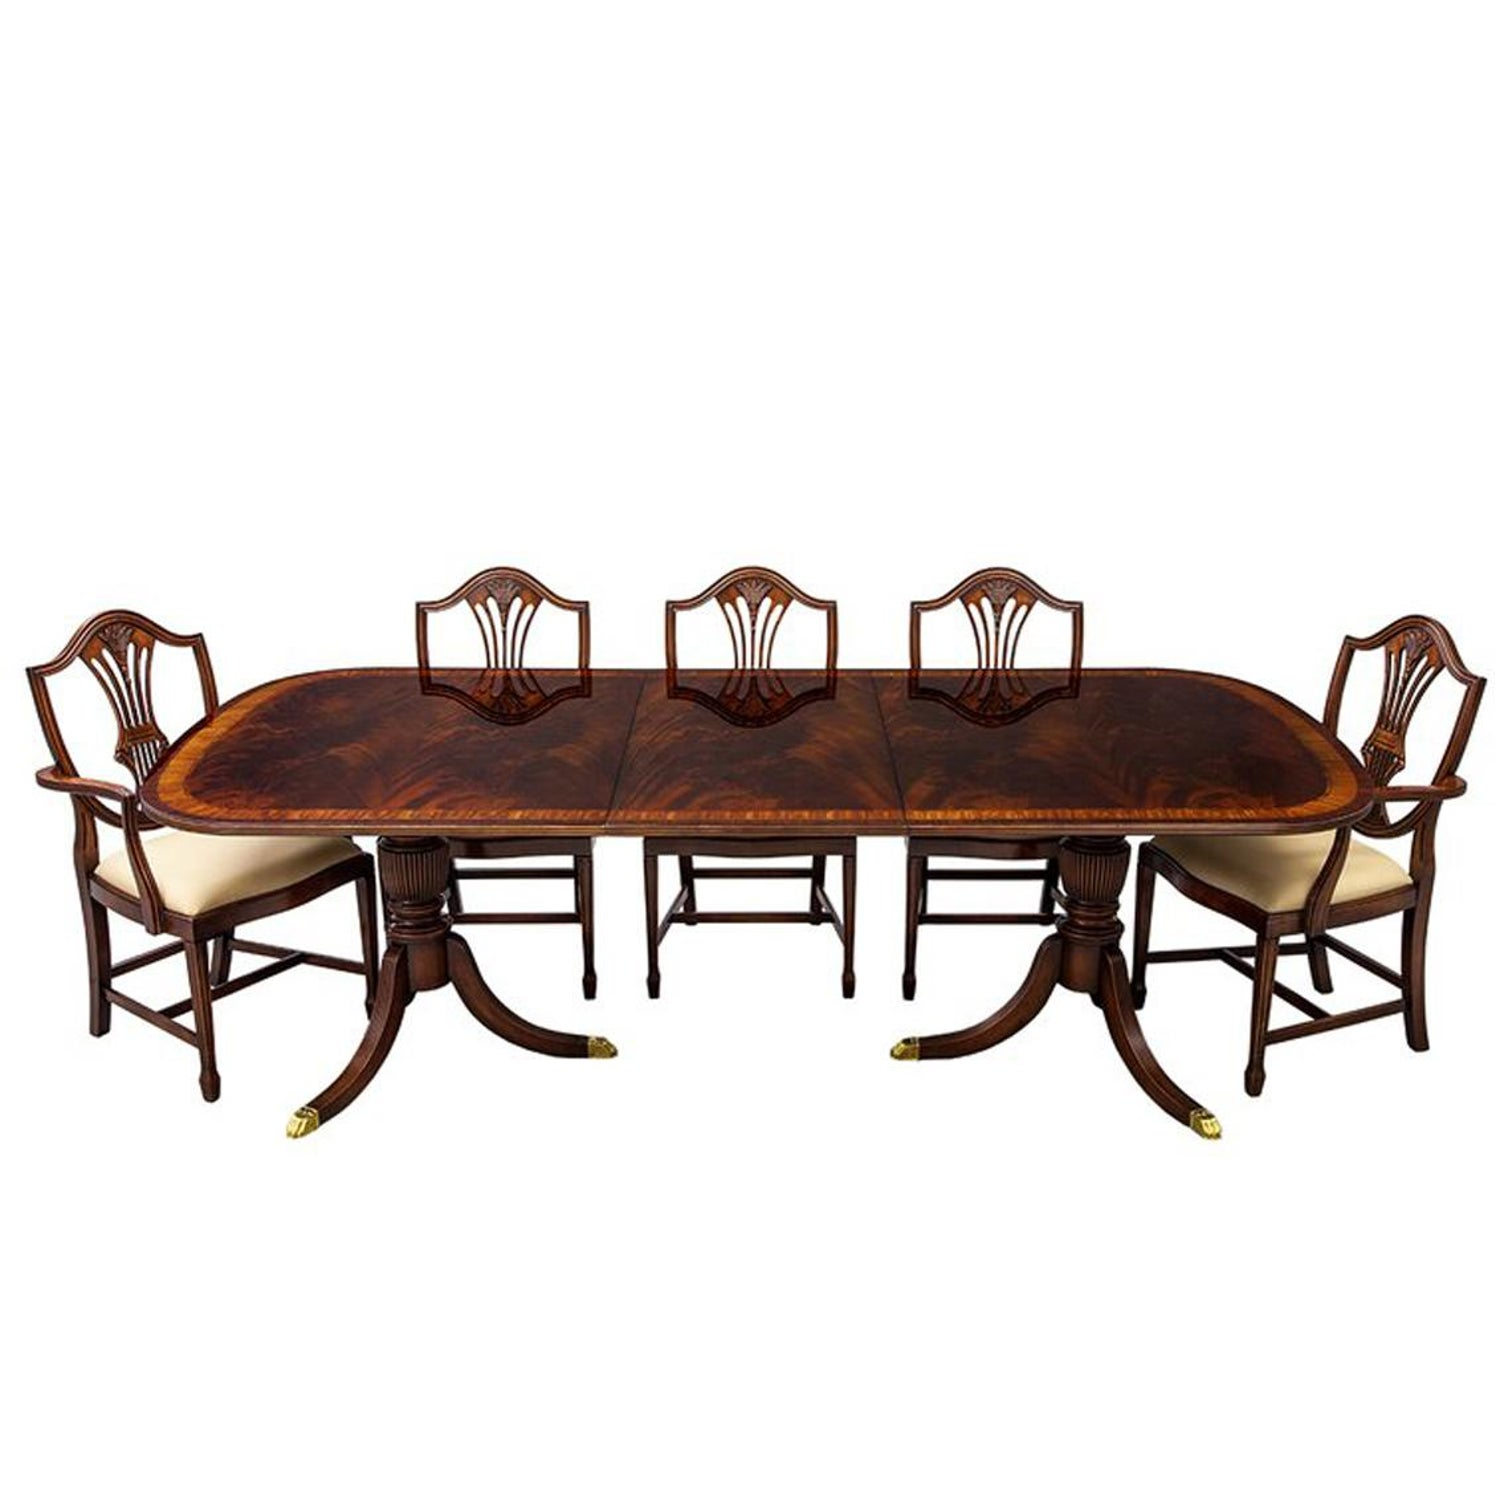 20dc0e46f9e1 Flamed Mahogany Duncan Phyfe Style High Gloss Dining Table and Chairs Set  For Sale at 1stdibs